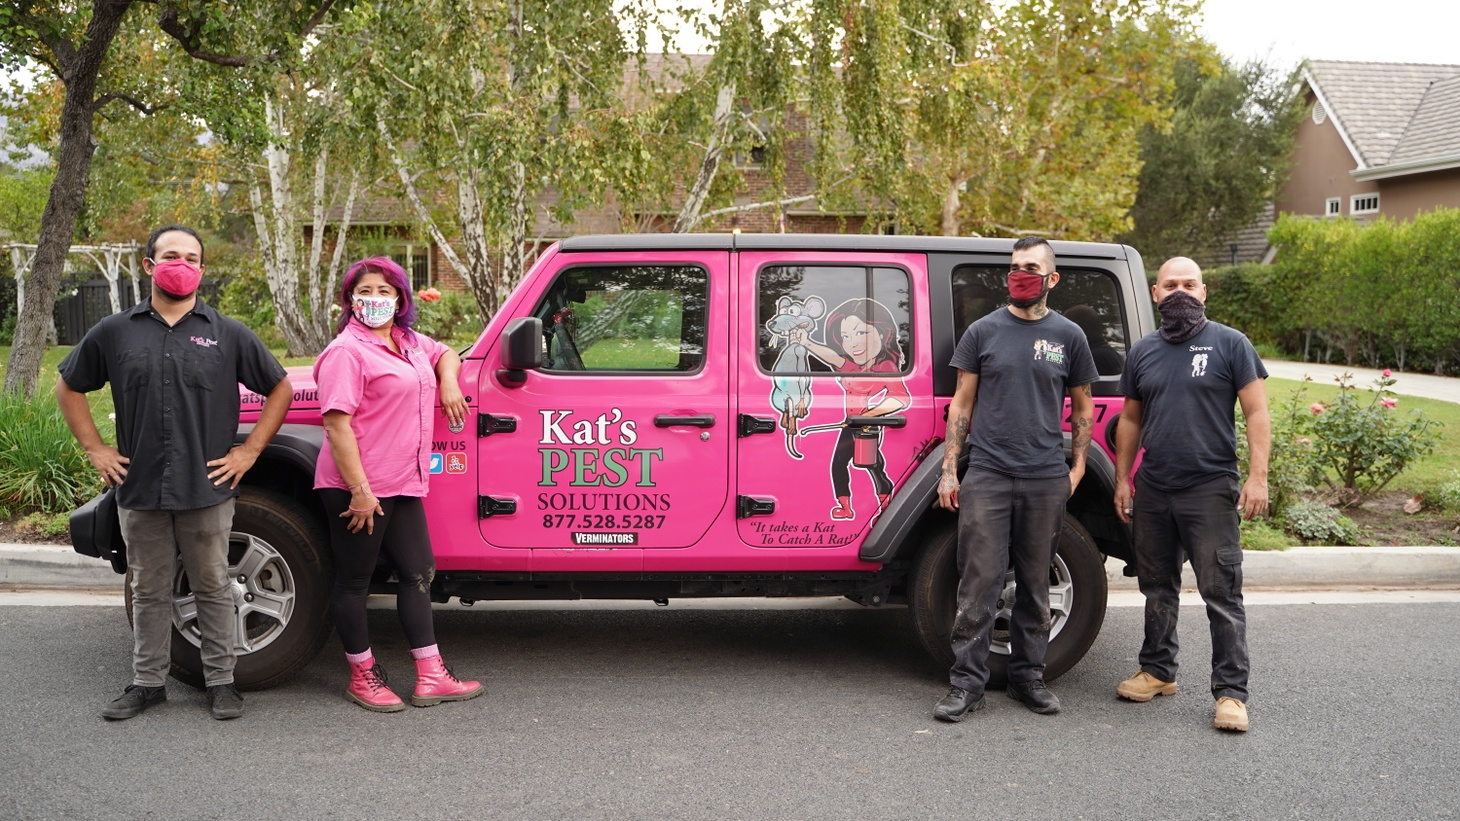 Kat Herrera, owner of Kat's Pest Solutions, stands in front of a hot pink company Jeep alongside her team of professional exterminators.